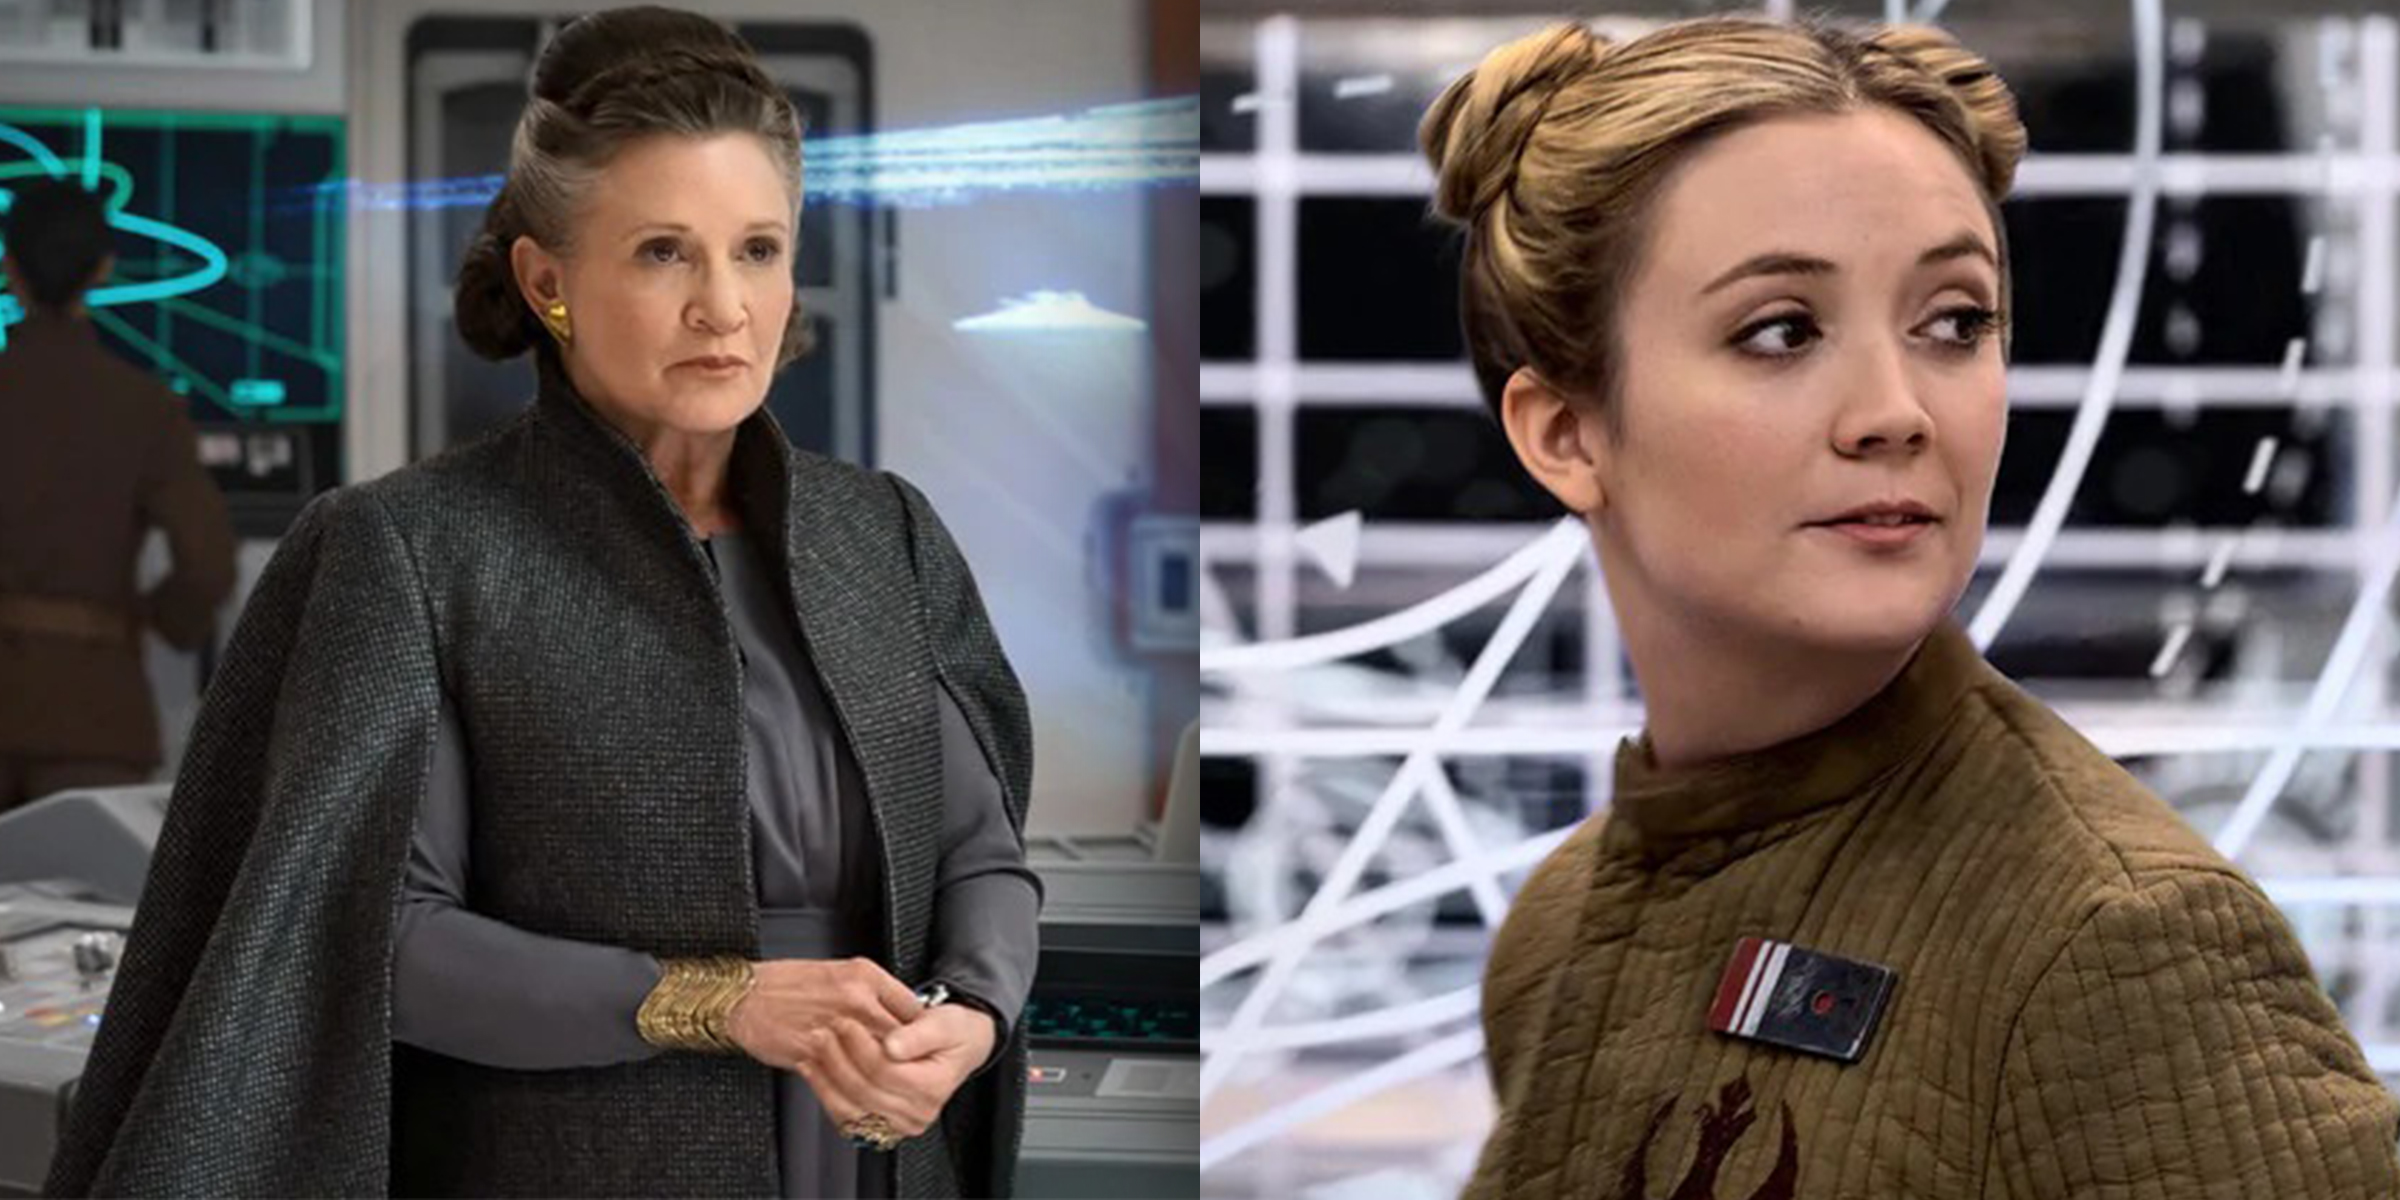 Carrie Fisher S Daughter Billie Lourd Played Young Leia In Star Wars Rise Of Skywalker